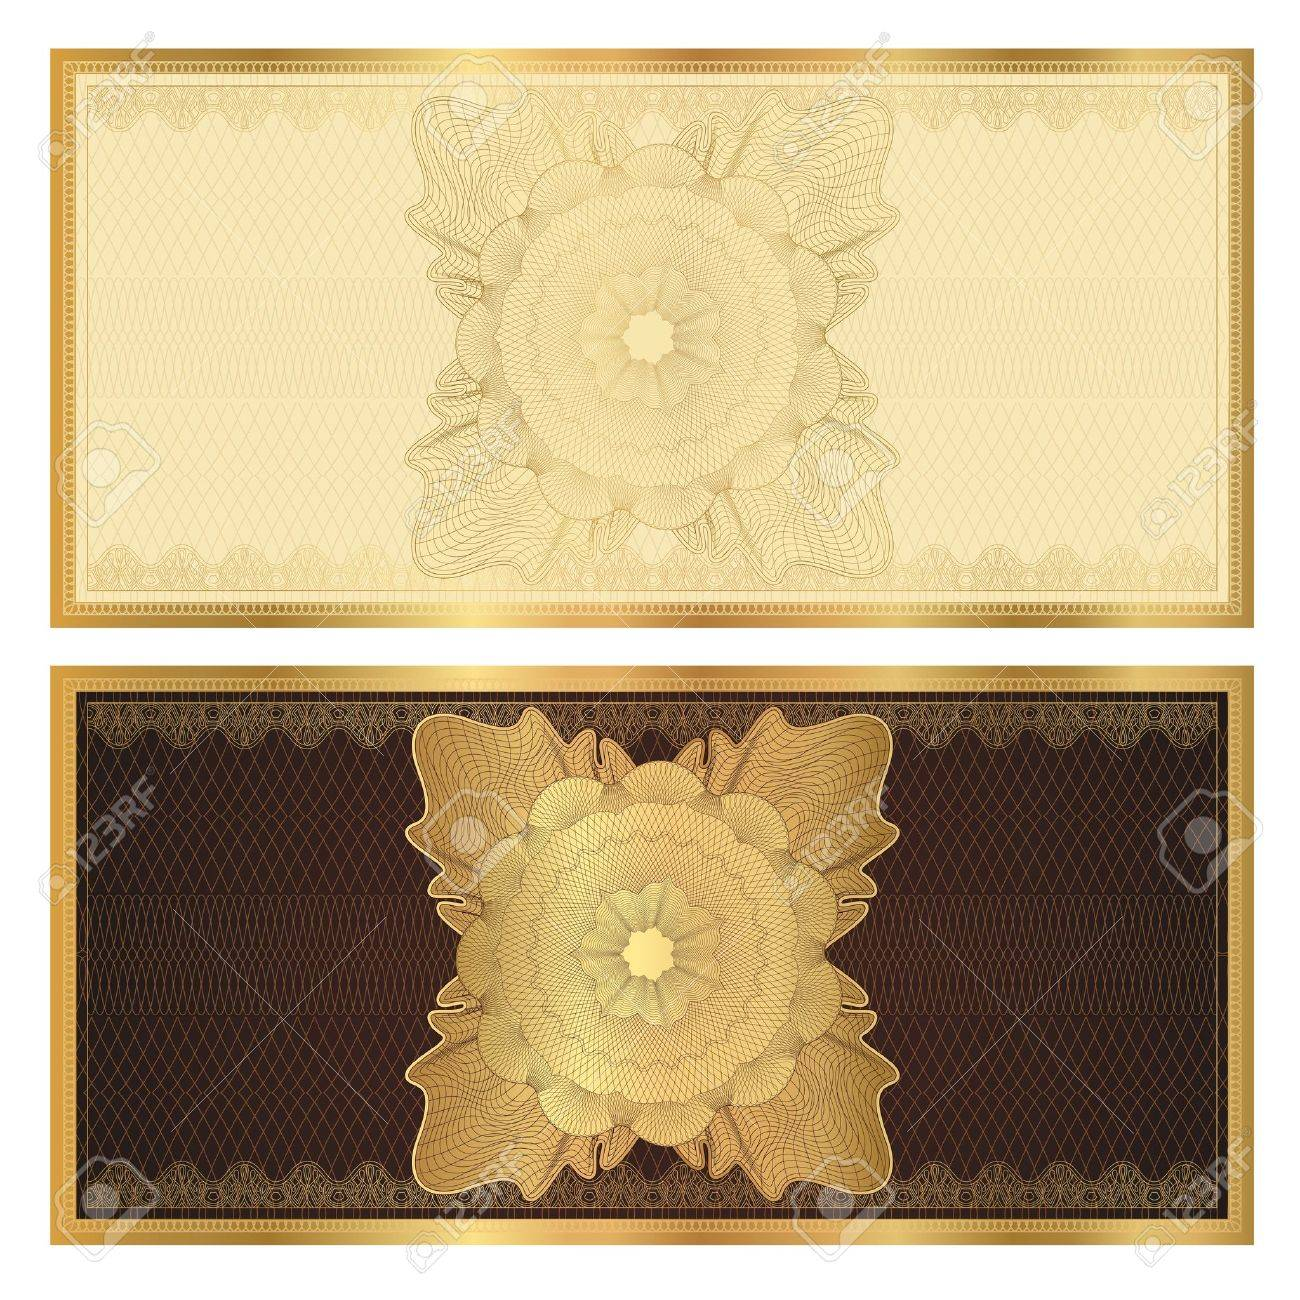 Attractive Gift Certificate Voucher Template With Guilloche Pattern Watermarks And  Border Background Usable For Coupon, Banknote  Money Voucher Template